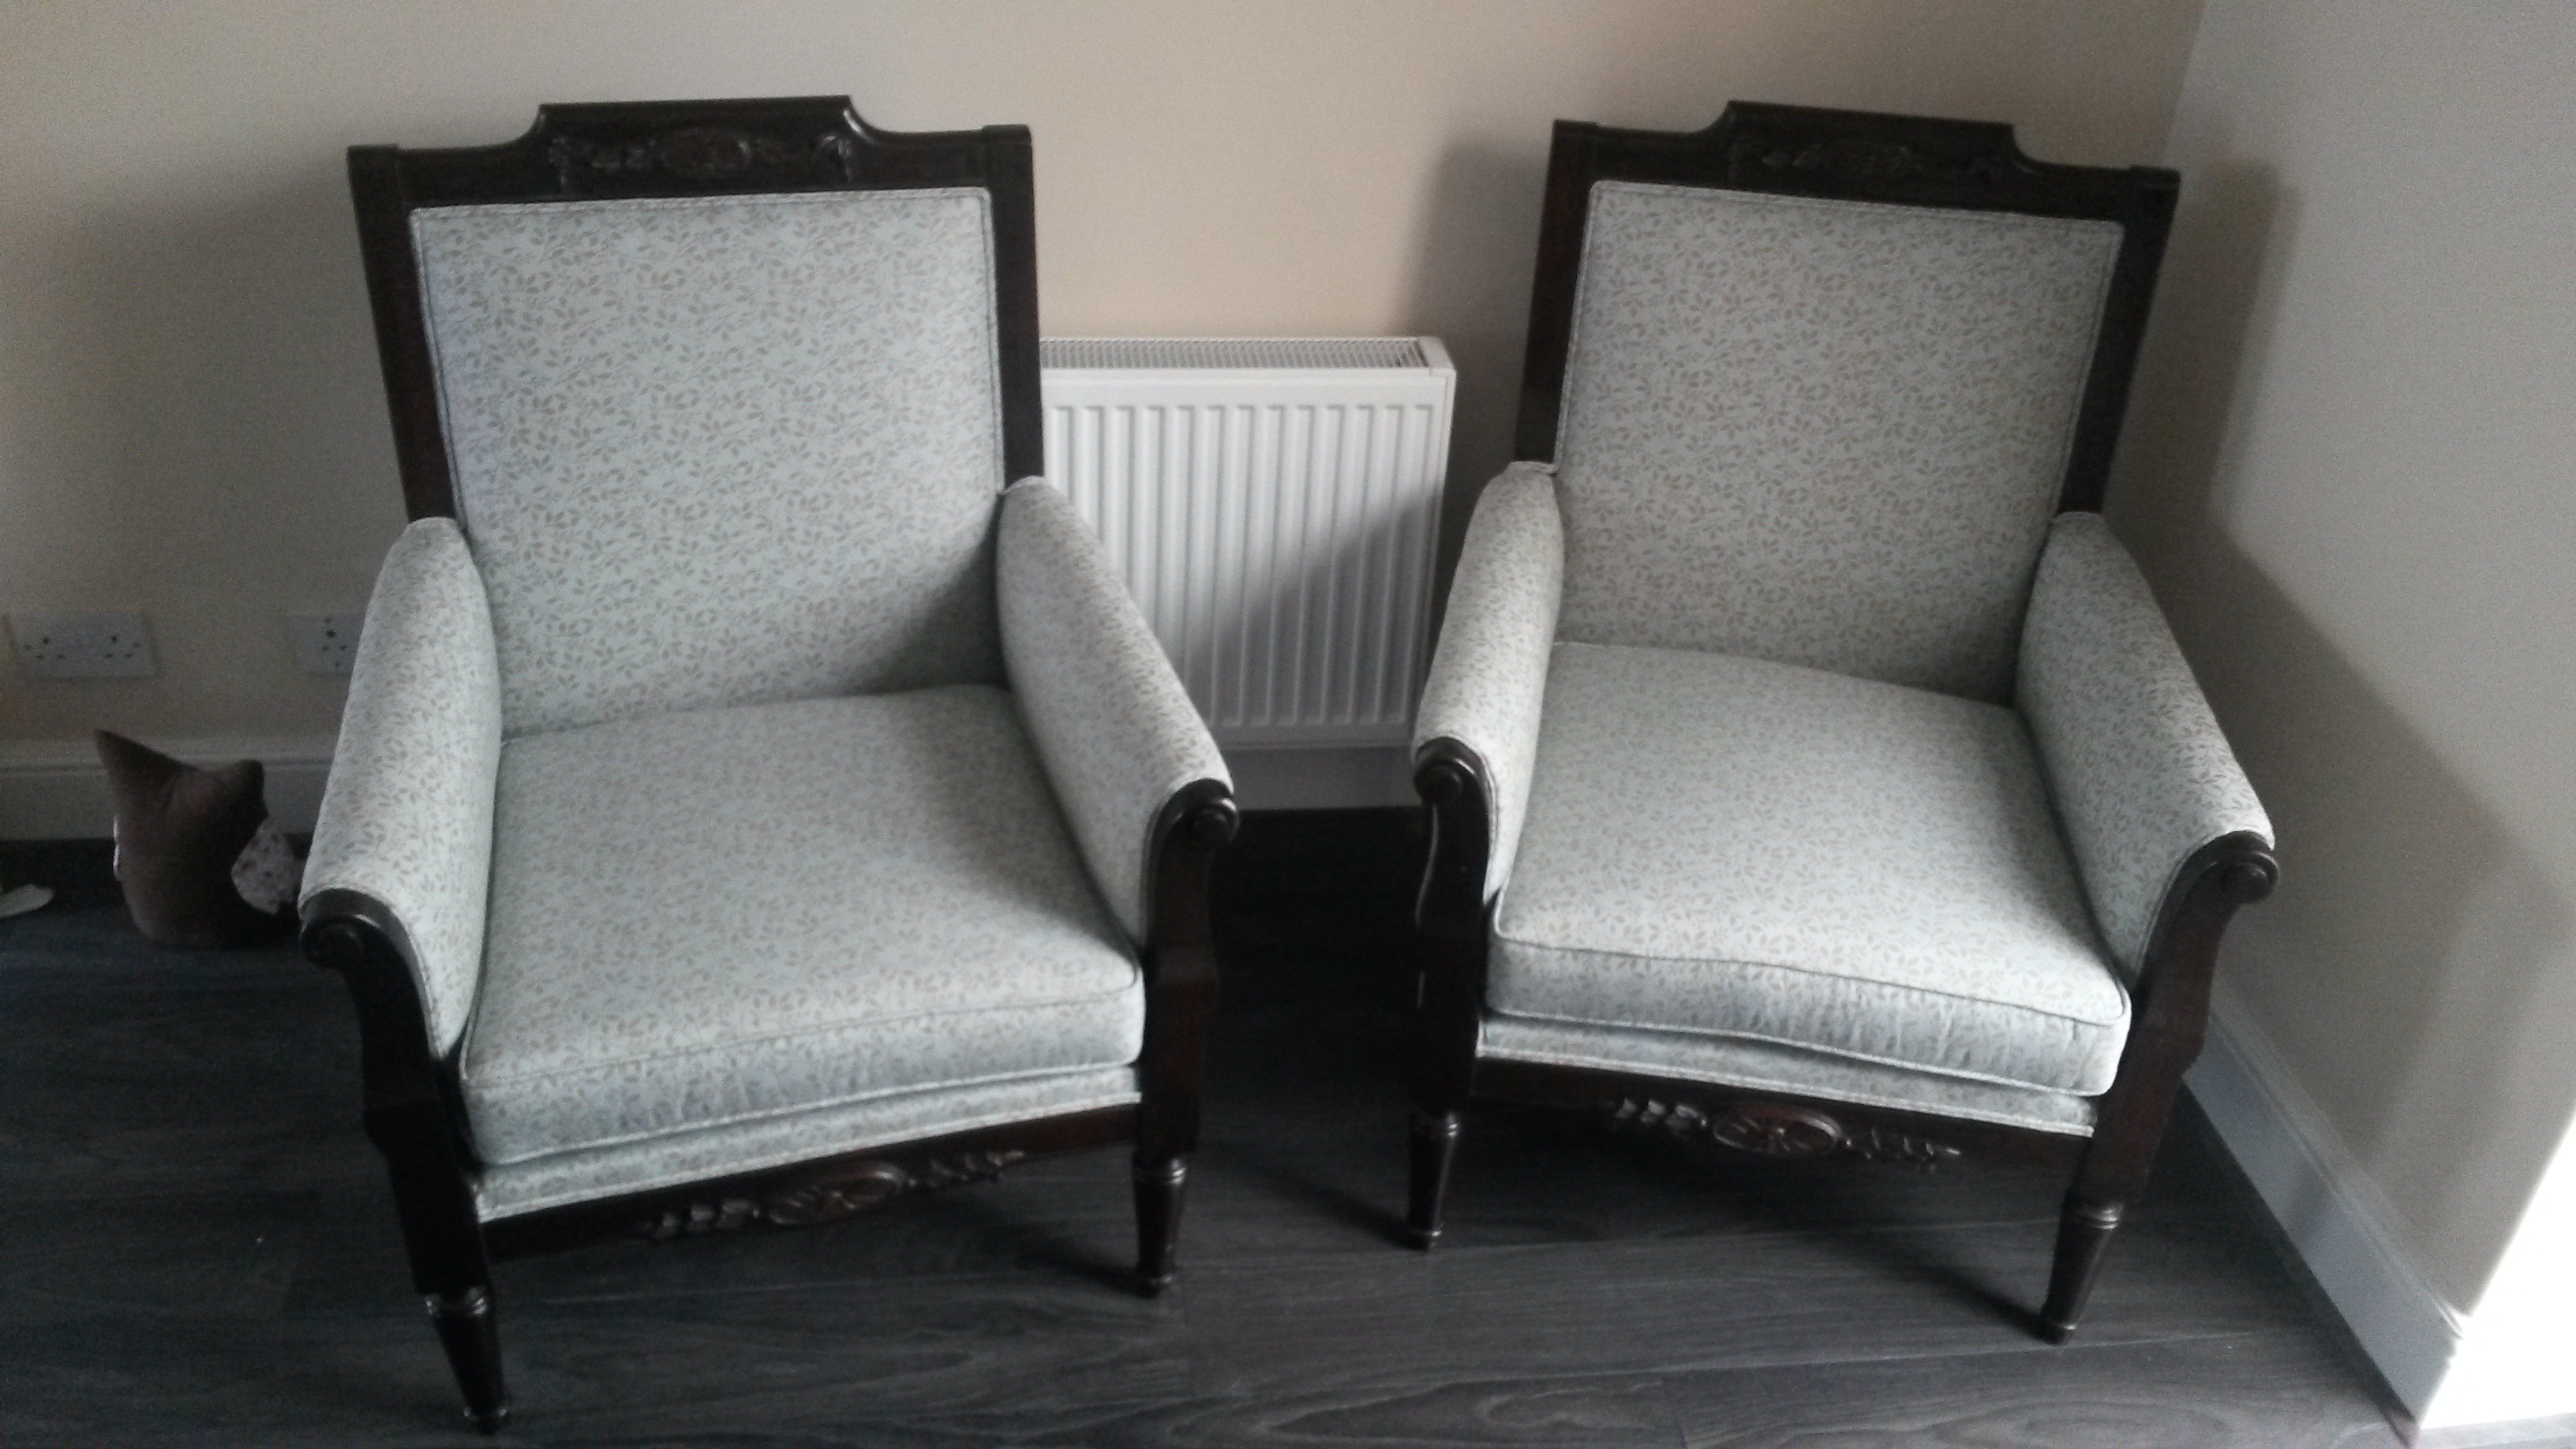 Two armchairs upholstered with gray fabric